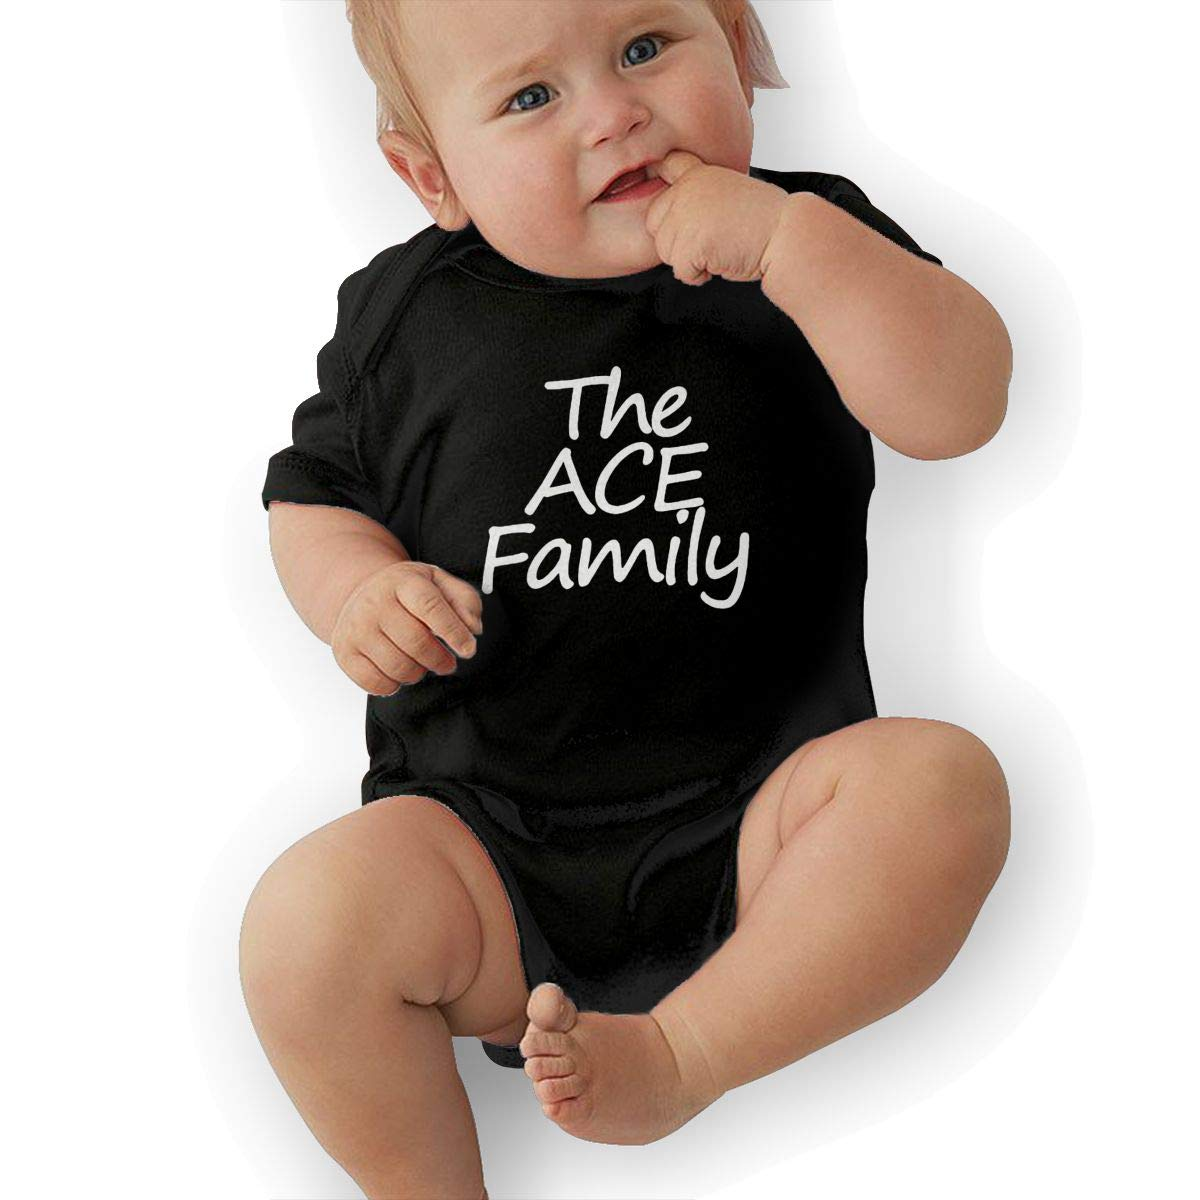 The ACE Family Short Sleeve Infant Jumpsuit Cute Newborn Outfits Summer Bodysuits